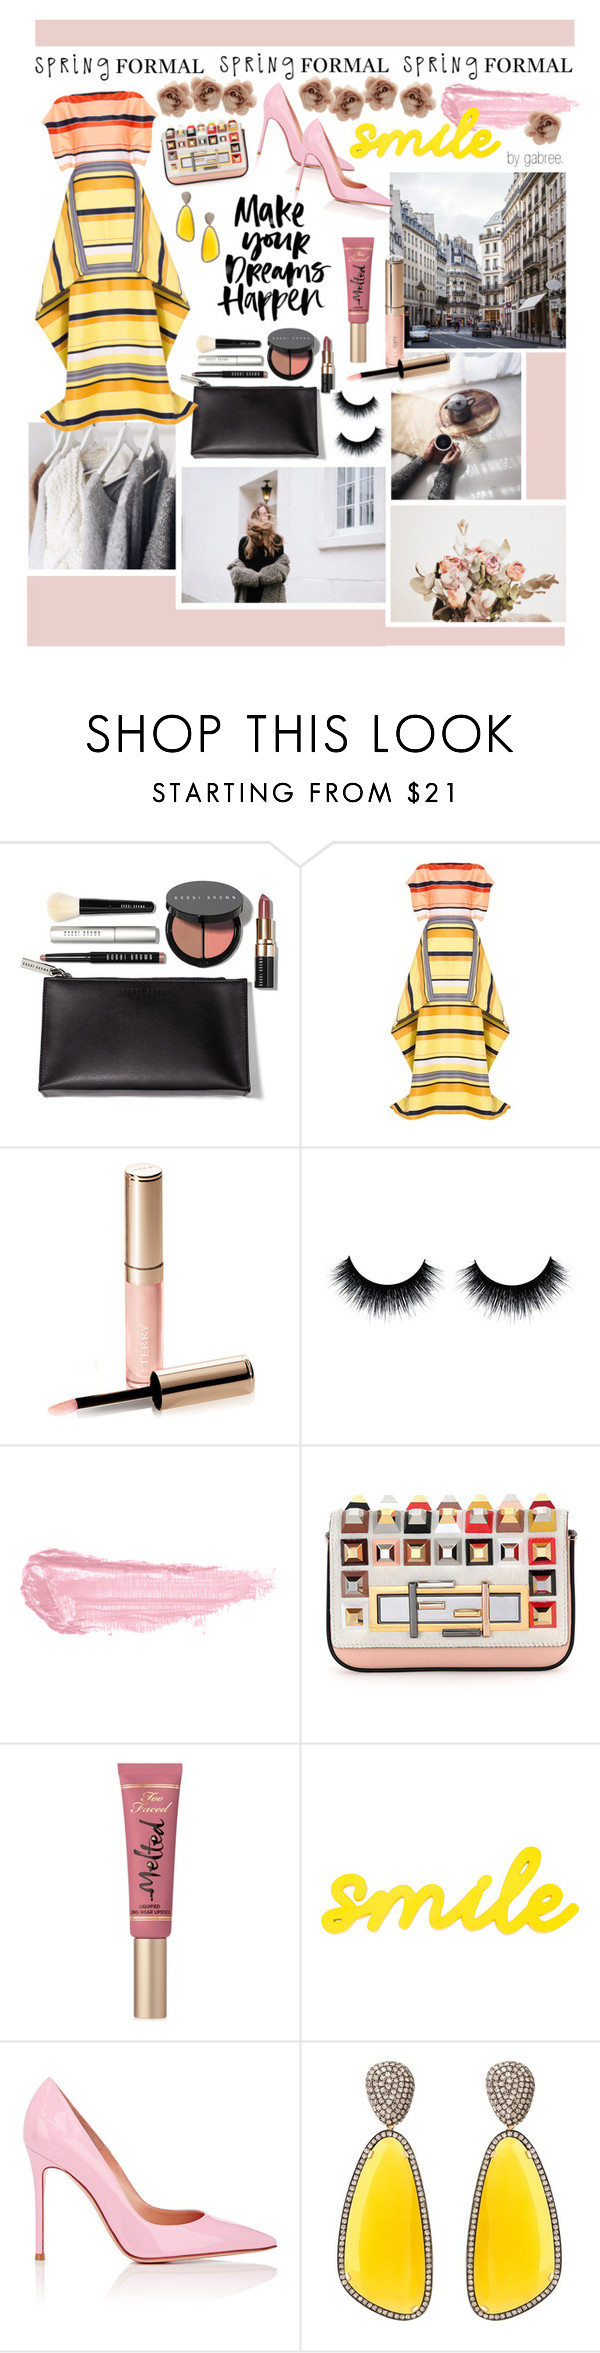 """Spring Formal"" by gabree ❤ liked on Polyvore featuring Bobbi Brown Cosmetics, Christian V Siriano, By Terry, Fendi, Too Faced Cosmetics, Gianvito Rossi, Christina Debs and Accessorize"